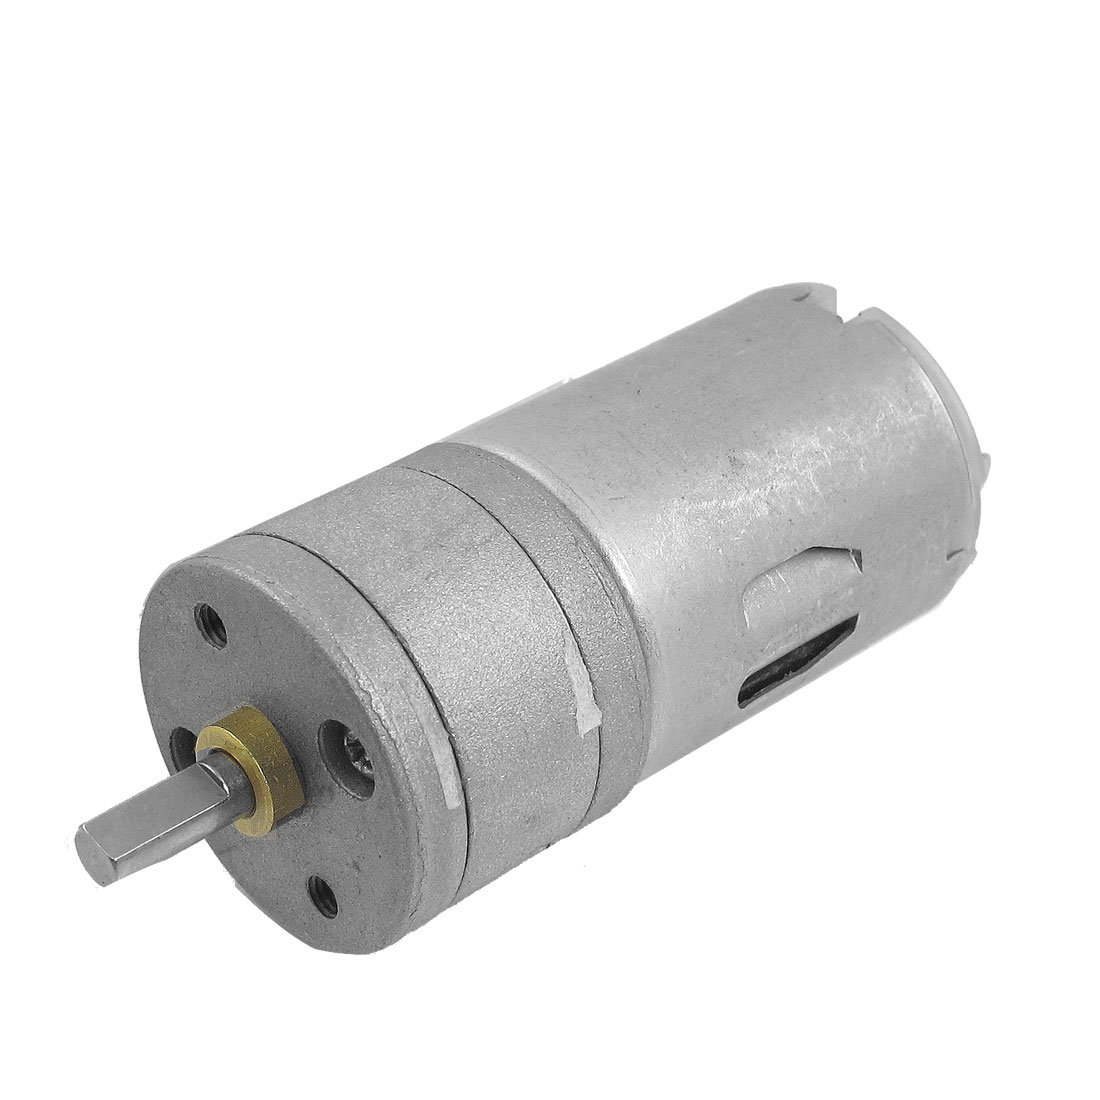 DC 6V 600RPM 1A 25GA 2 Terminals Electric Geared Motor Silver Tone